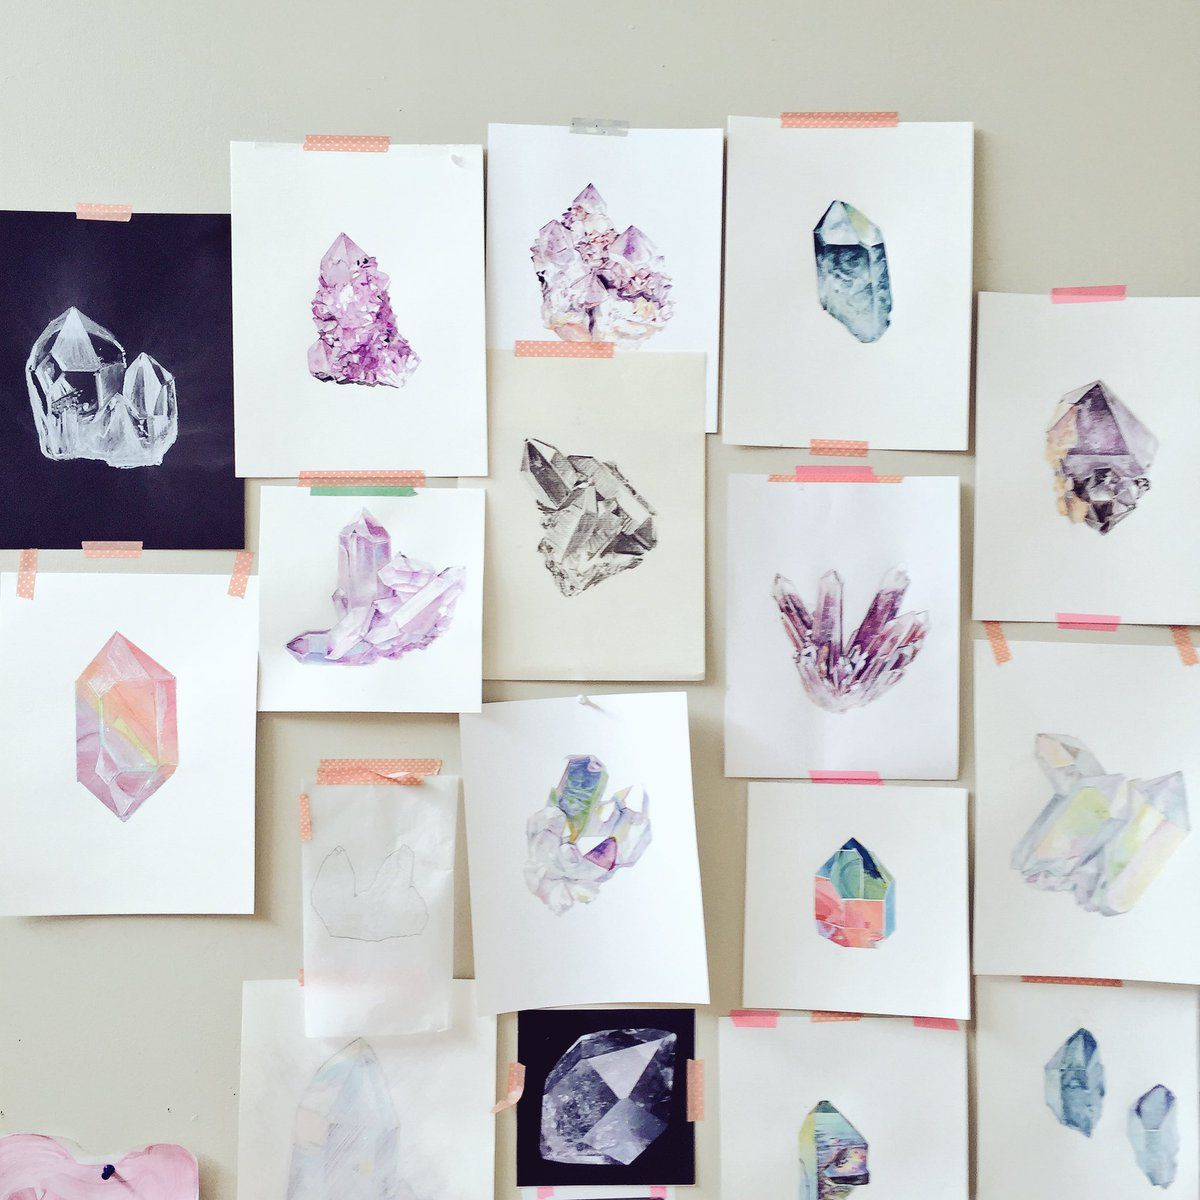 Gems, Crystals & Mineral Drawings and Paintings Johanna Martin